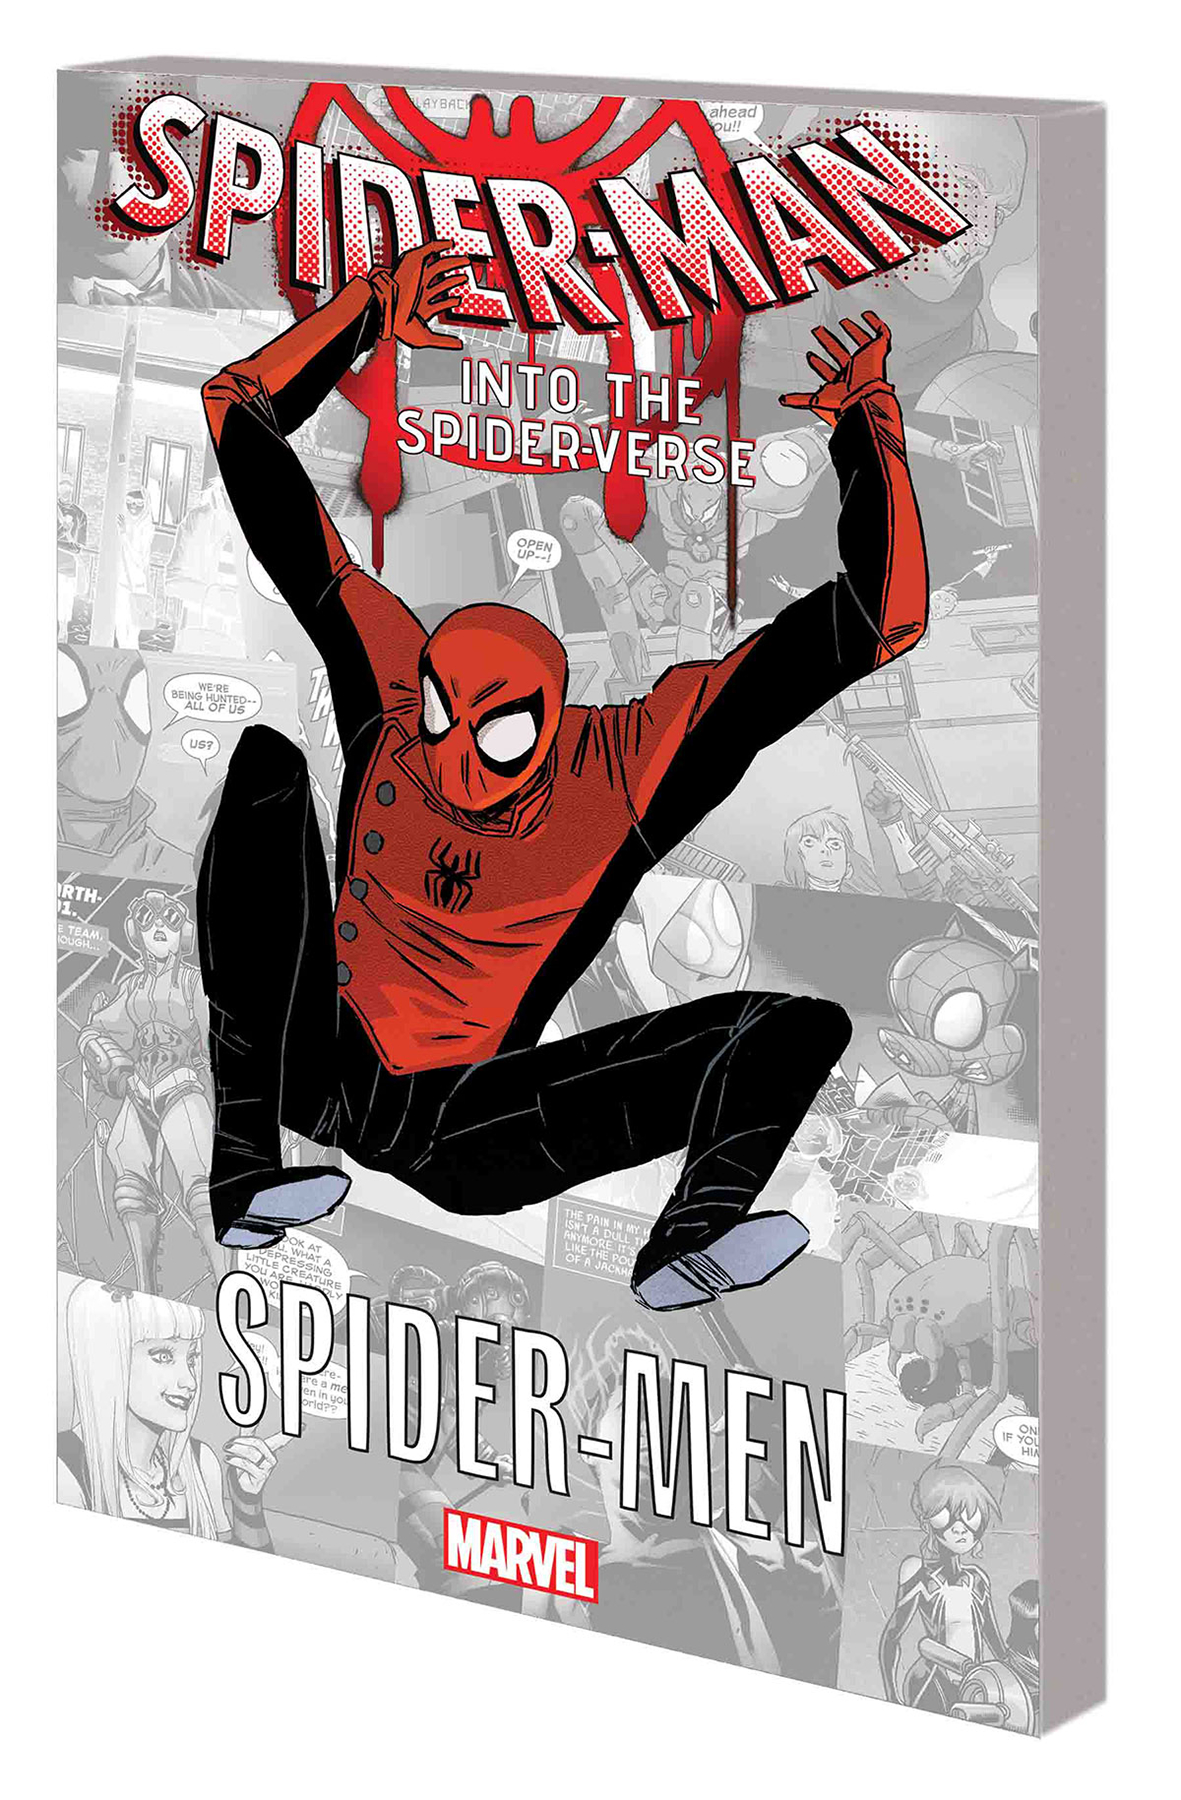 SPIDER-MAN SPIDER-VERSE GN TP SPIDER-MEN